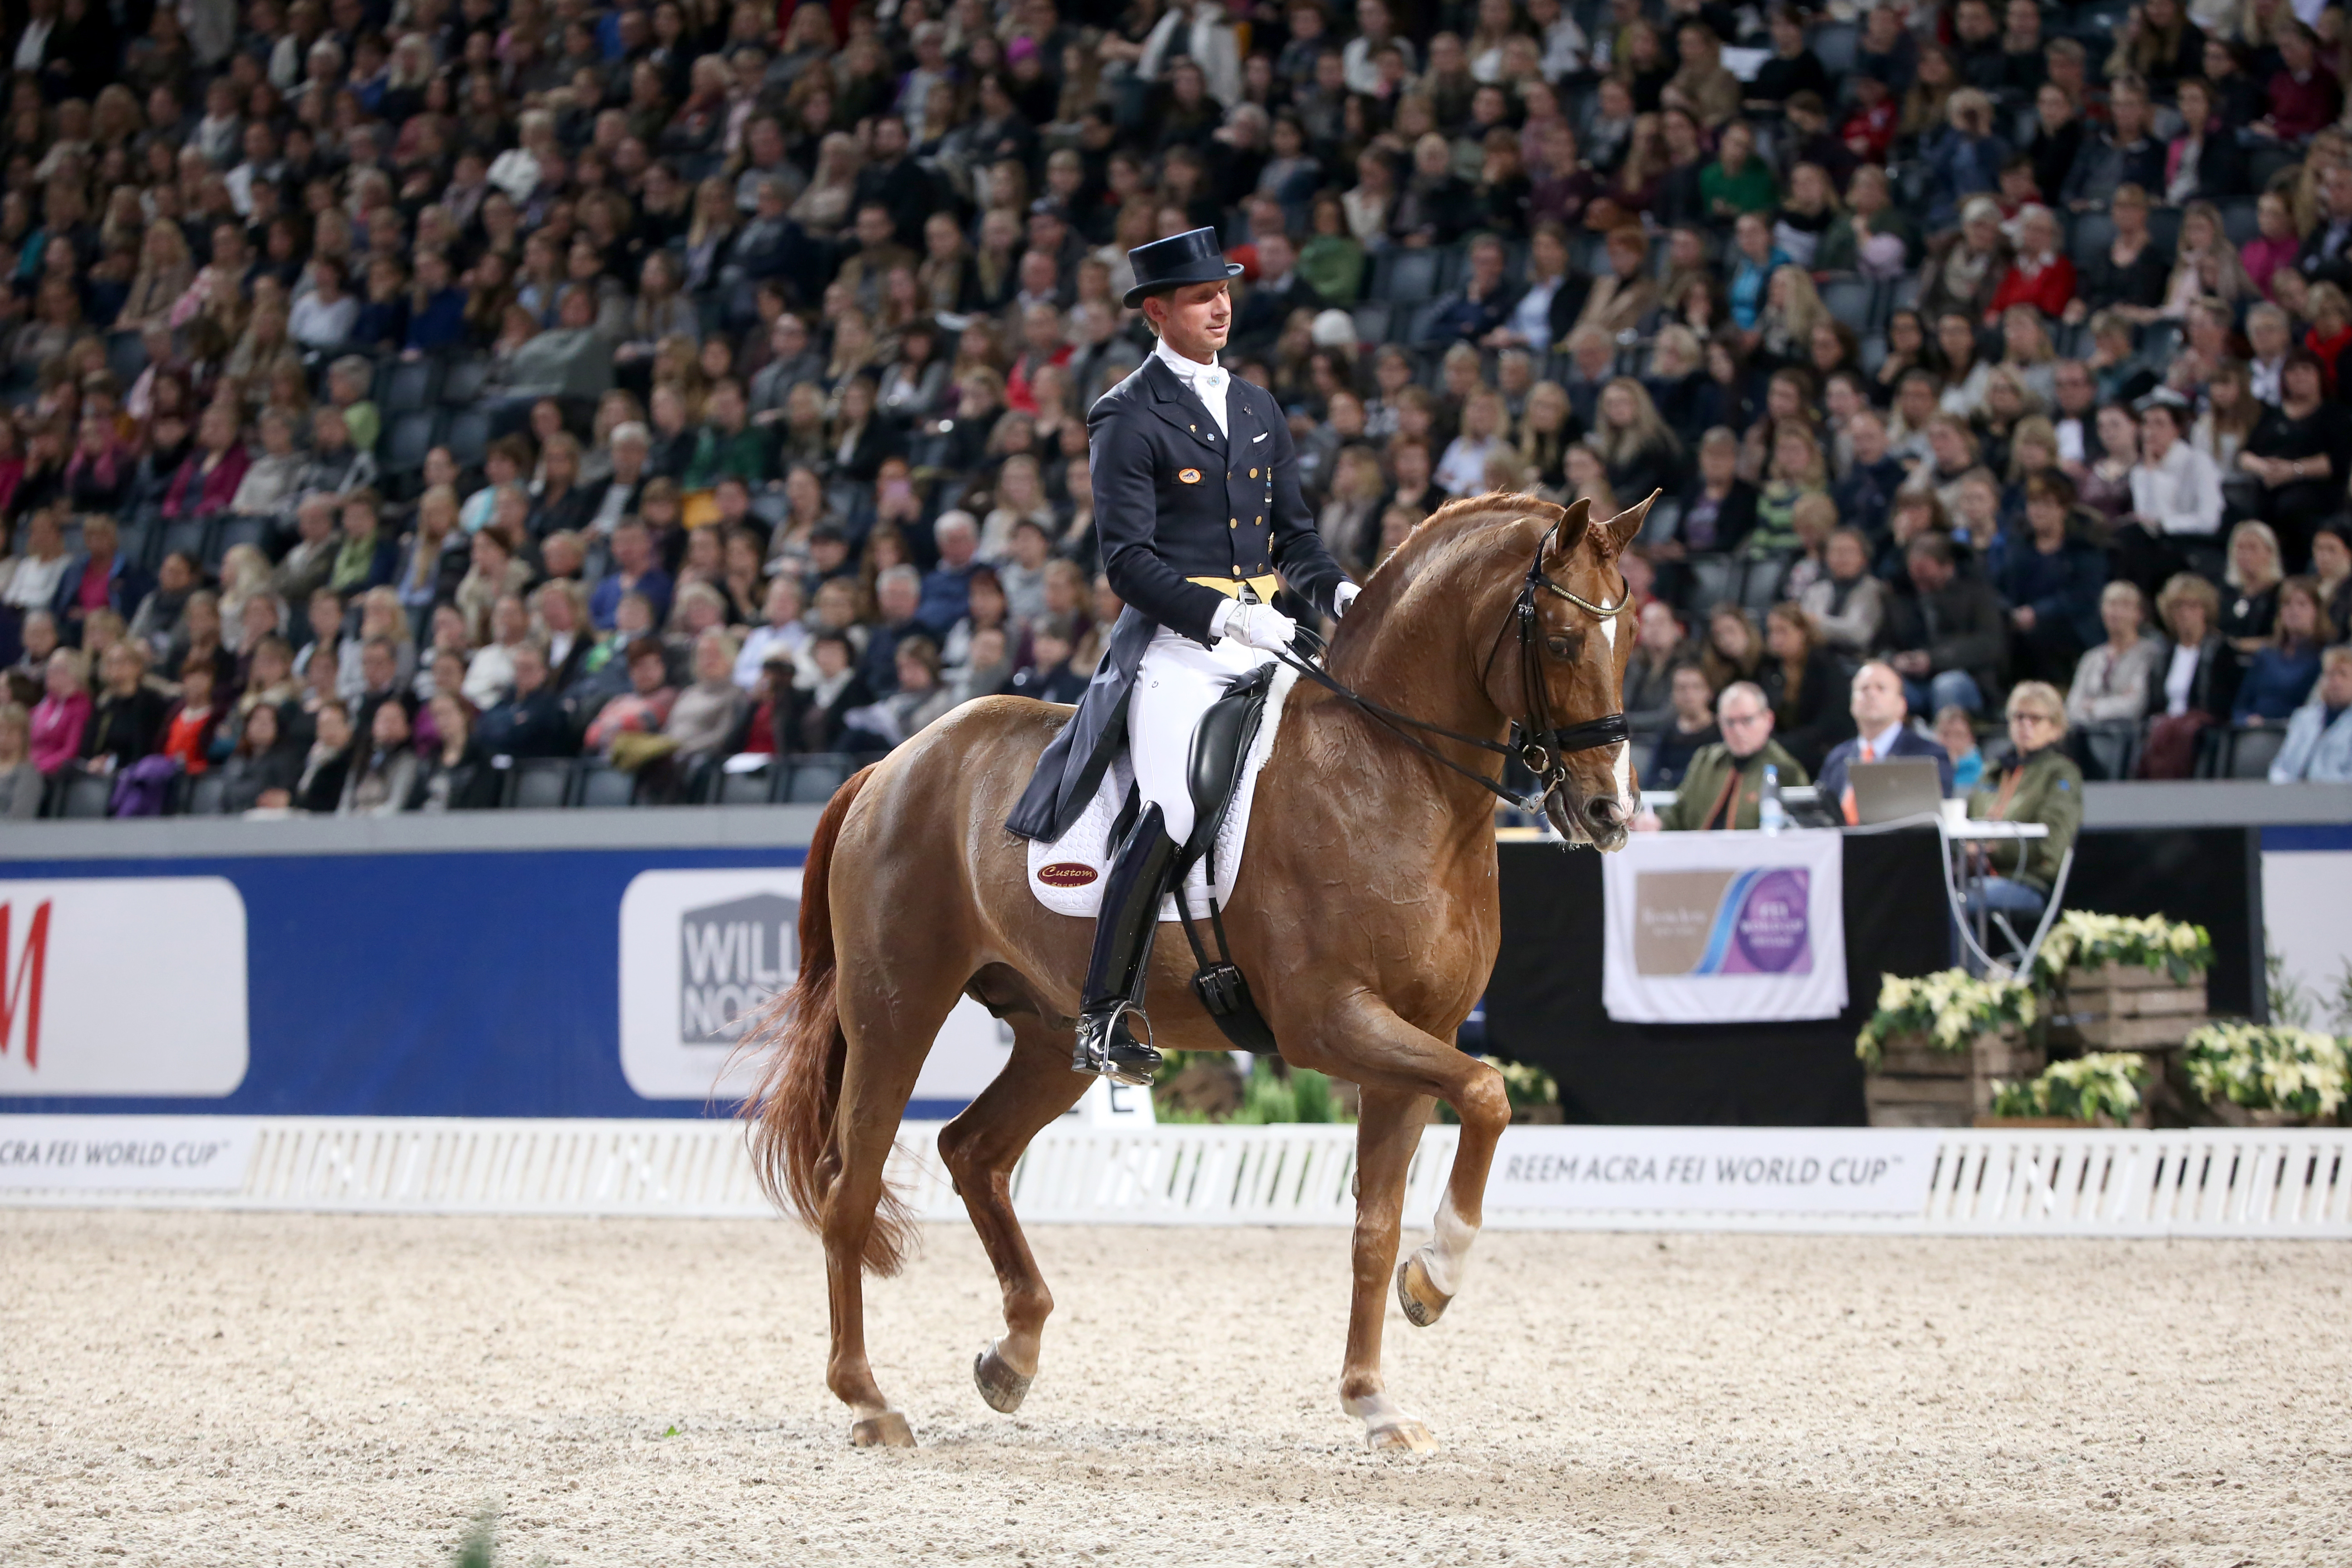 Friends Arena Patrik Kittel, SWE and Watermill Scandic were on 2:nd place in the Reem Acra FEI World Cup Dressage. Photo: Roland Thunholm Code: 718 35